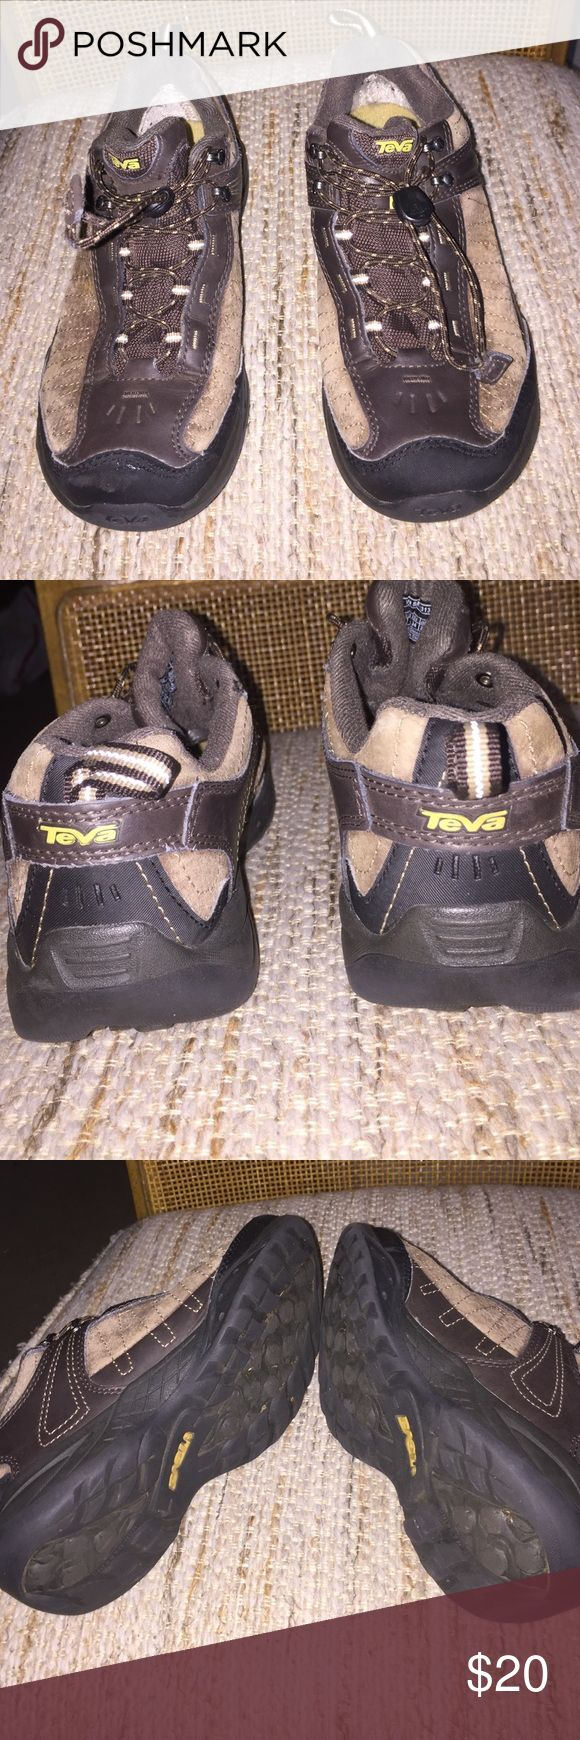 Teva Kids almost new rugged ankle boots Size 4.   Teva almost new brown and tan suede draw lace tough low cut boots. Worn only one time. Teva Shoes Boots